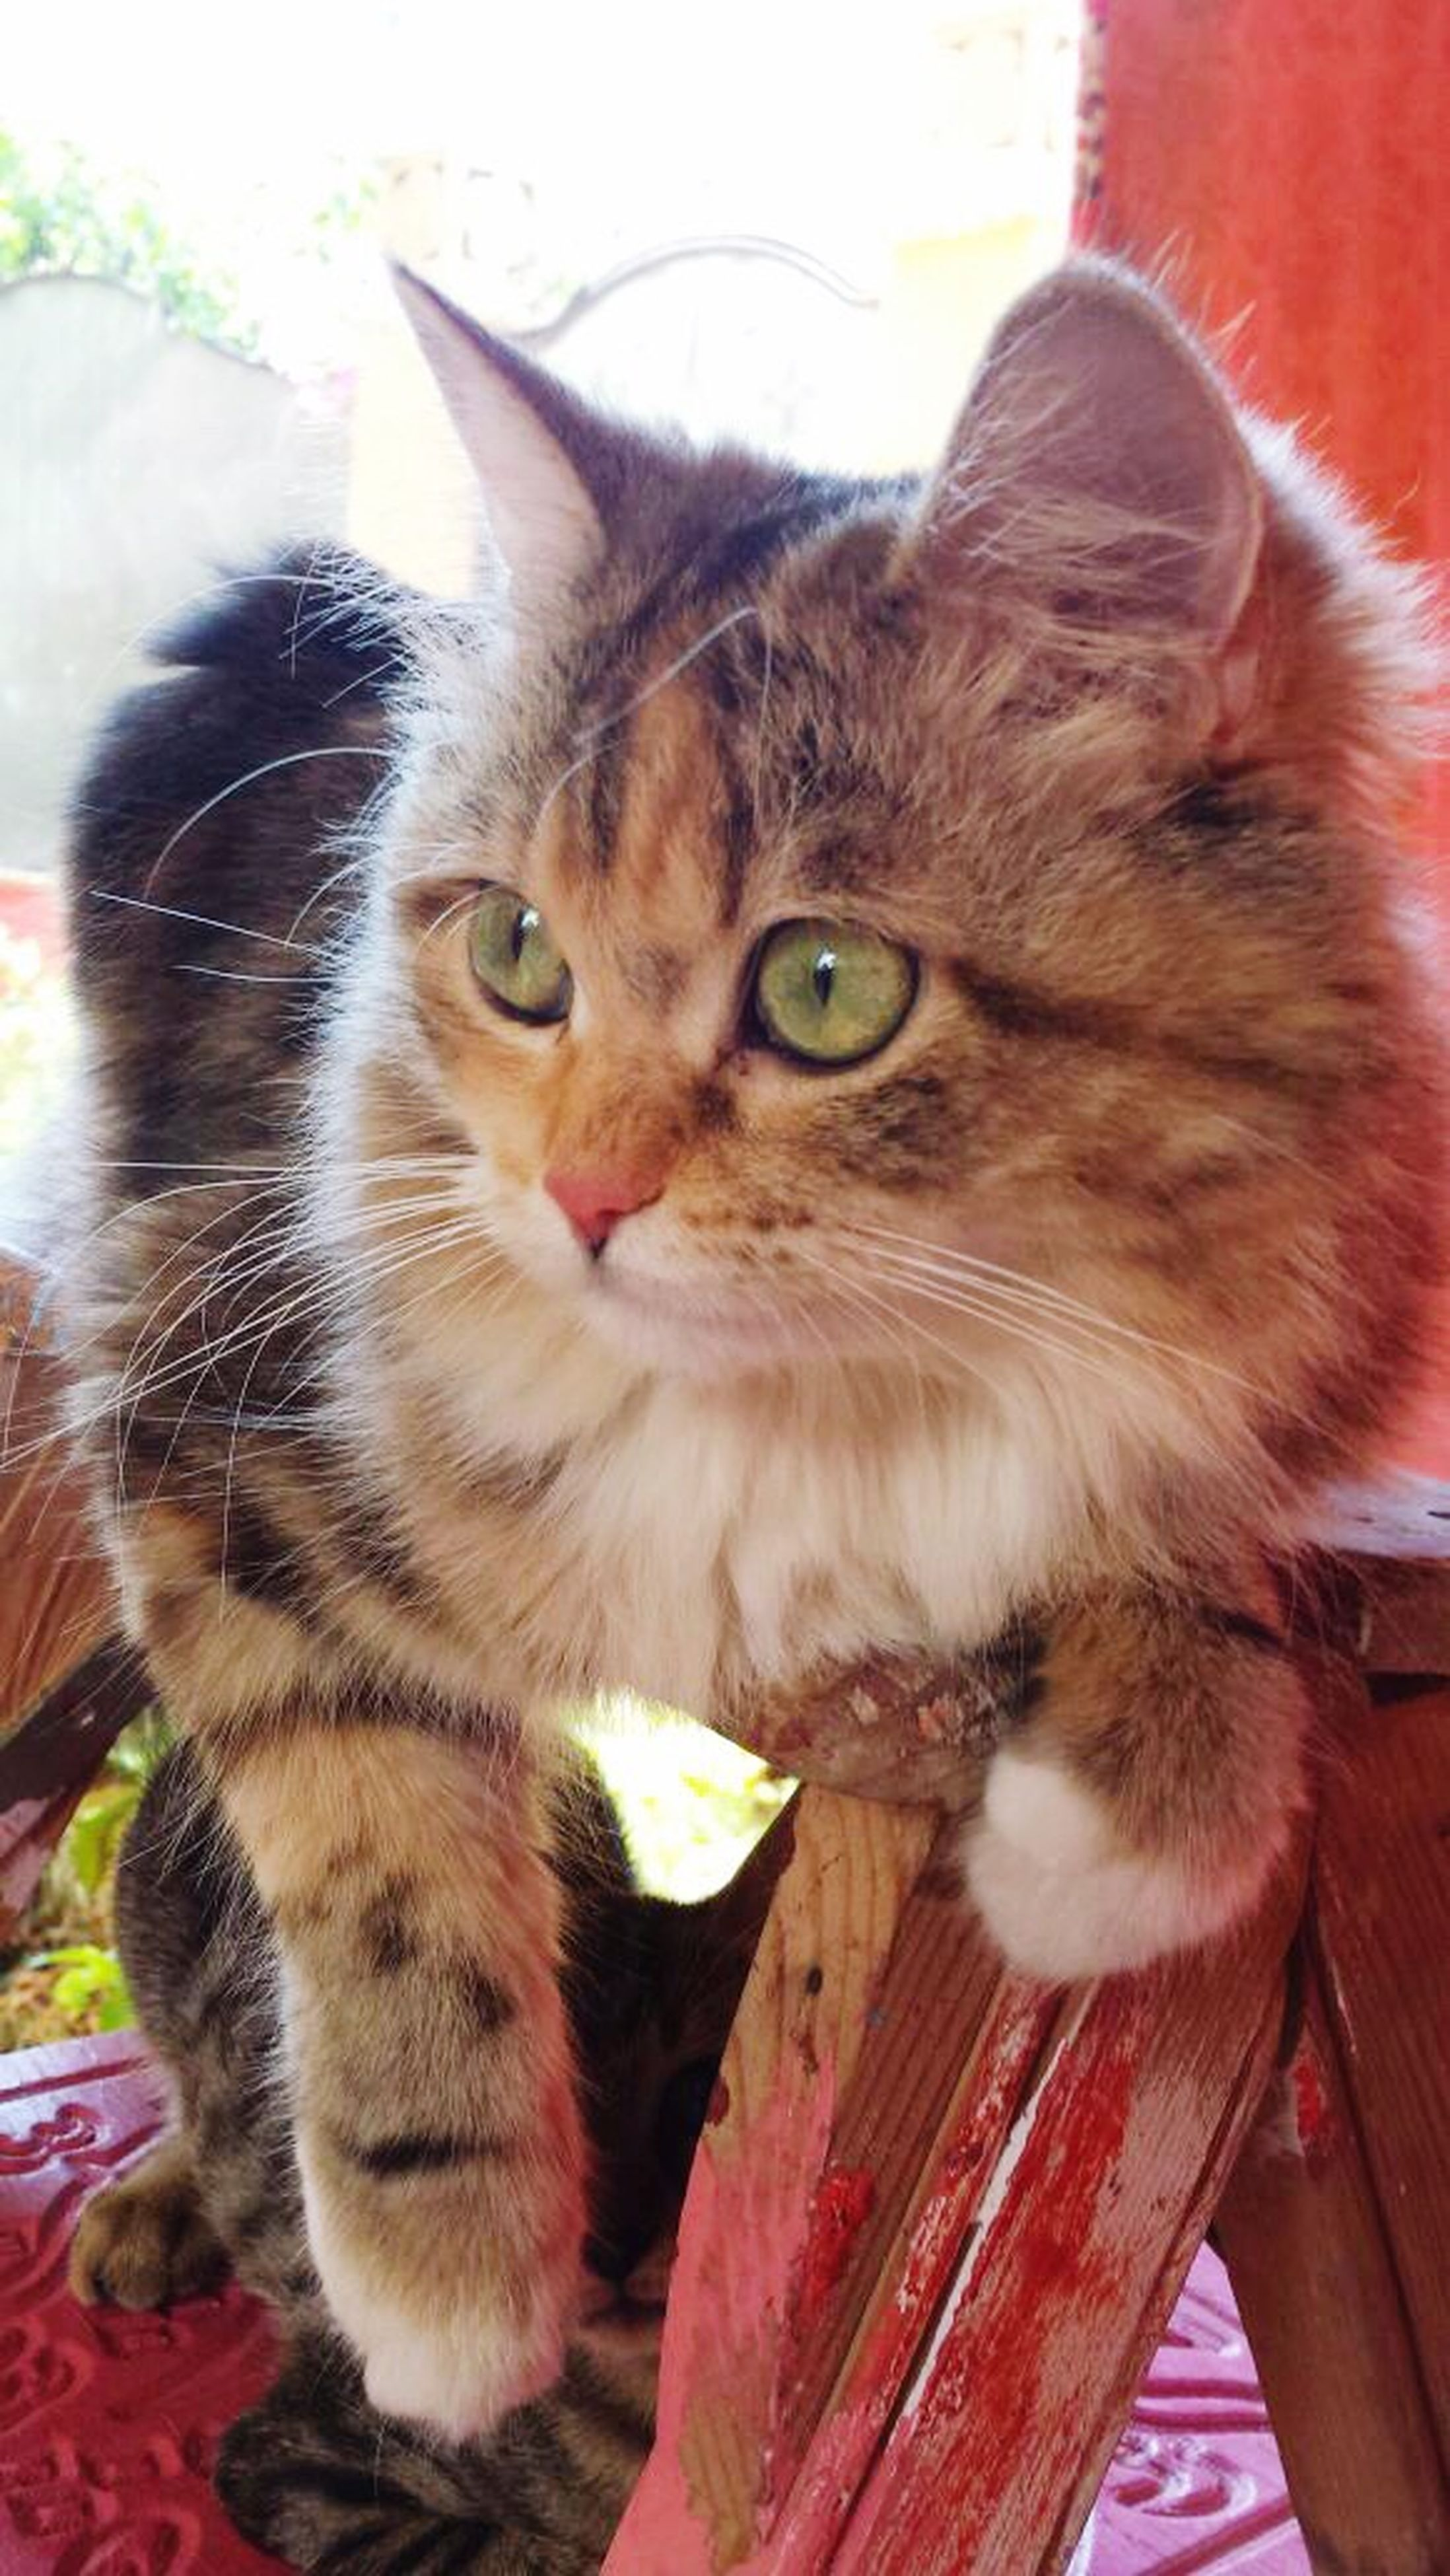 domestic cat, domestic animals, pets, mammal, animal themes, feline, one animal, looking at camera, whisker, portrait, no people, close-up, day, indoors